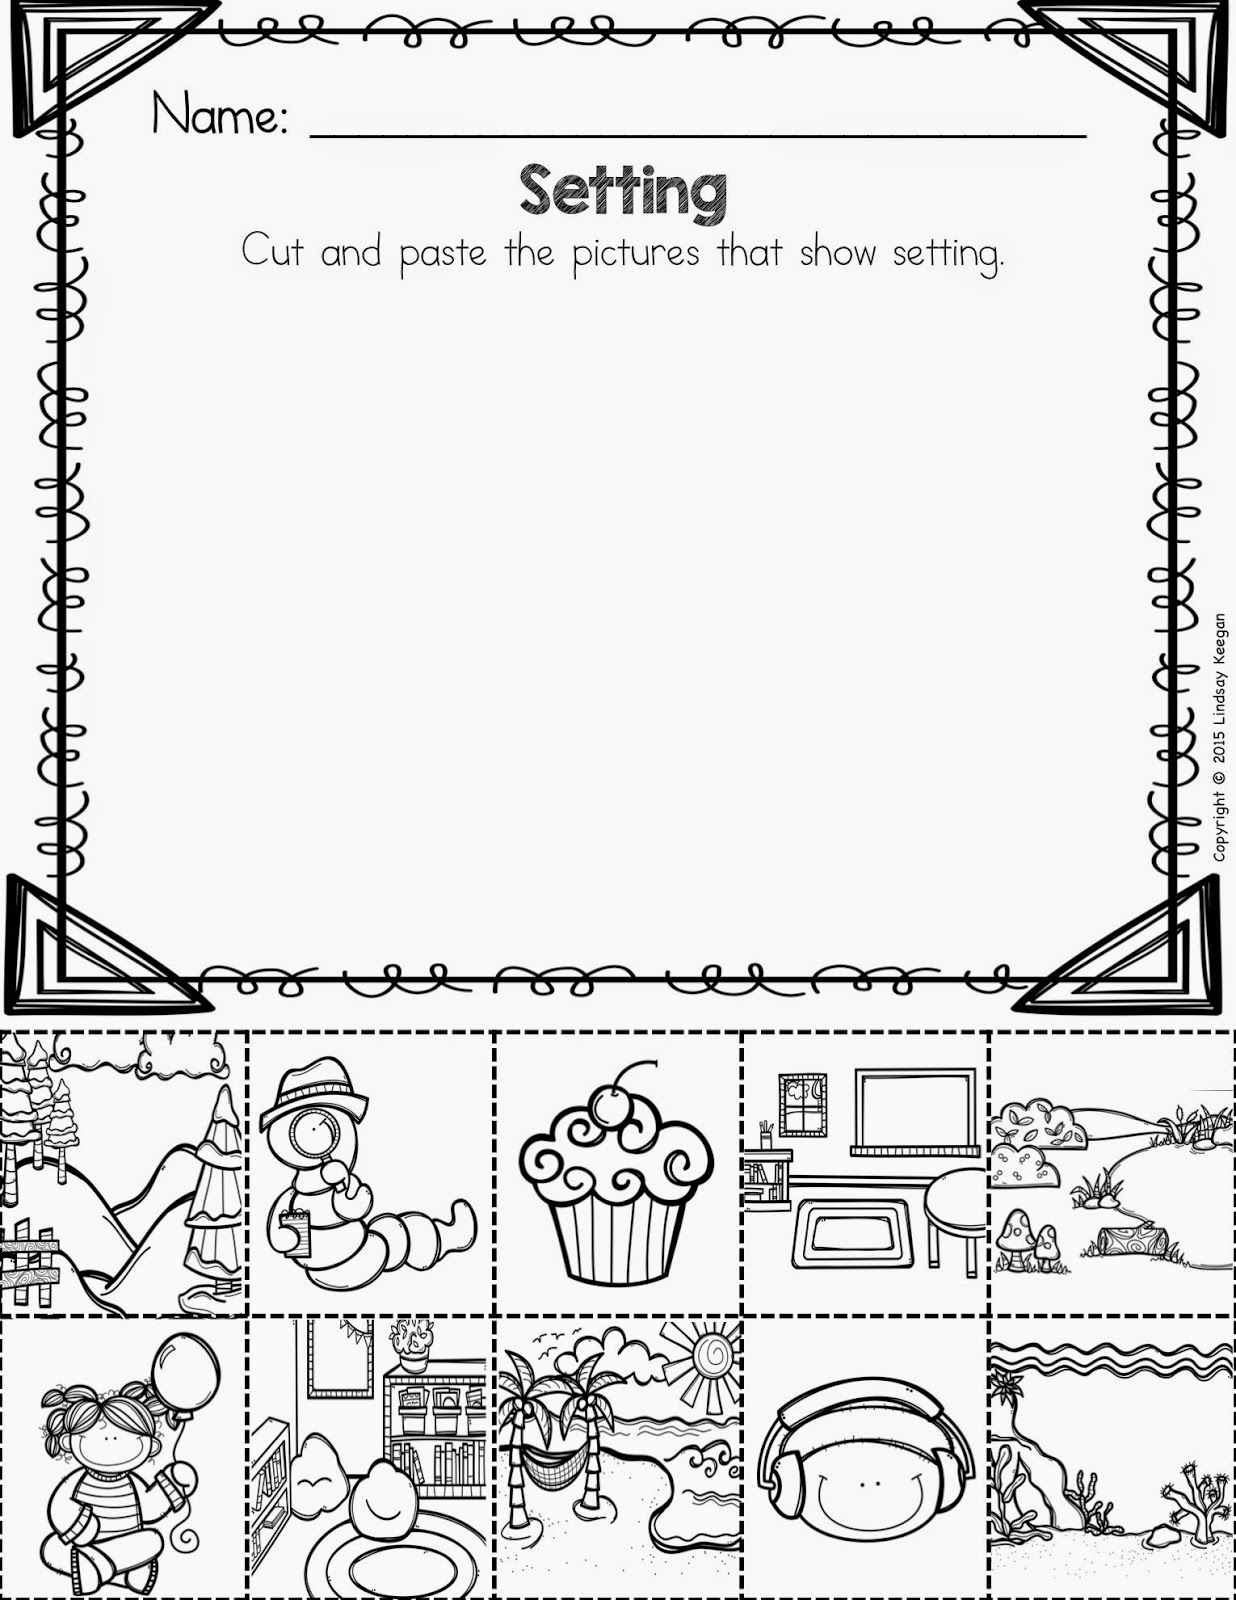 worksheet Elements Of A Story Worksheet keeping it cool at school teaching story elements and a princess i love through music so created 3 short songs to help my students remember how find the setting characters confli